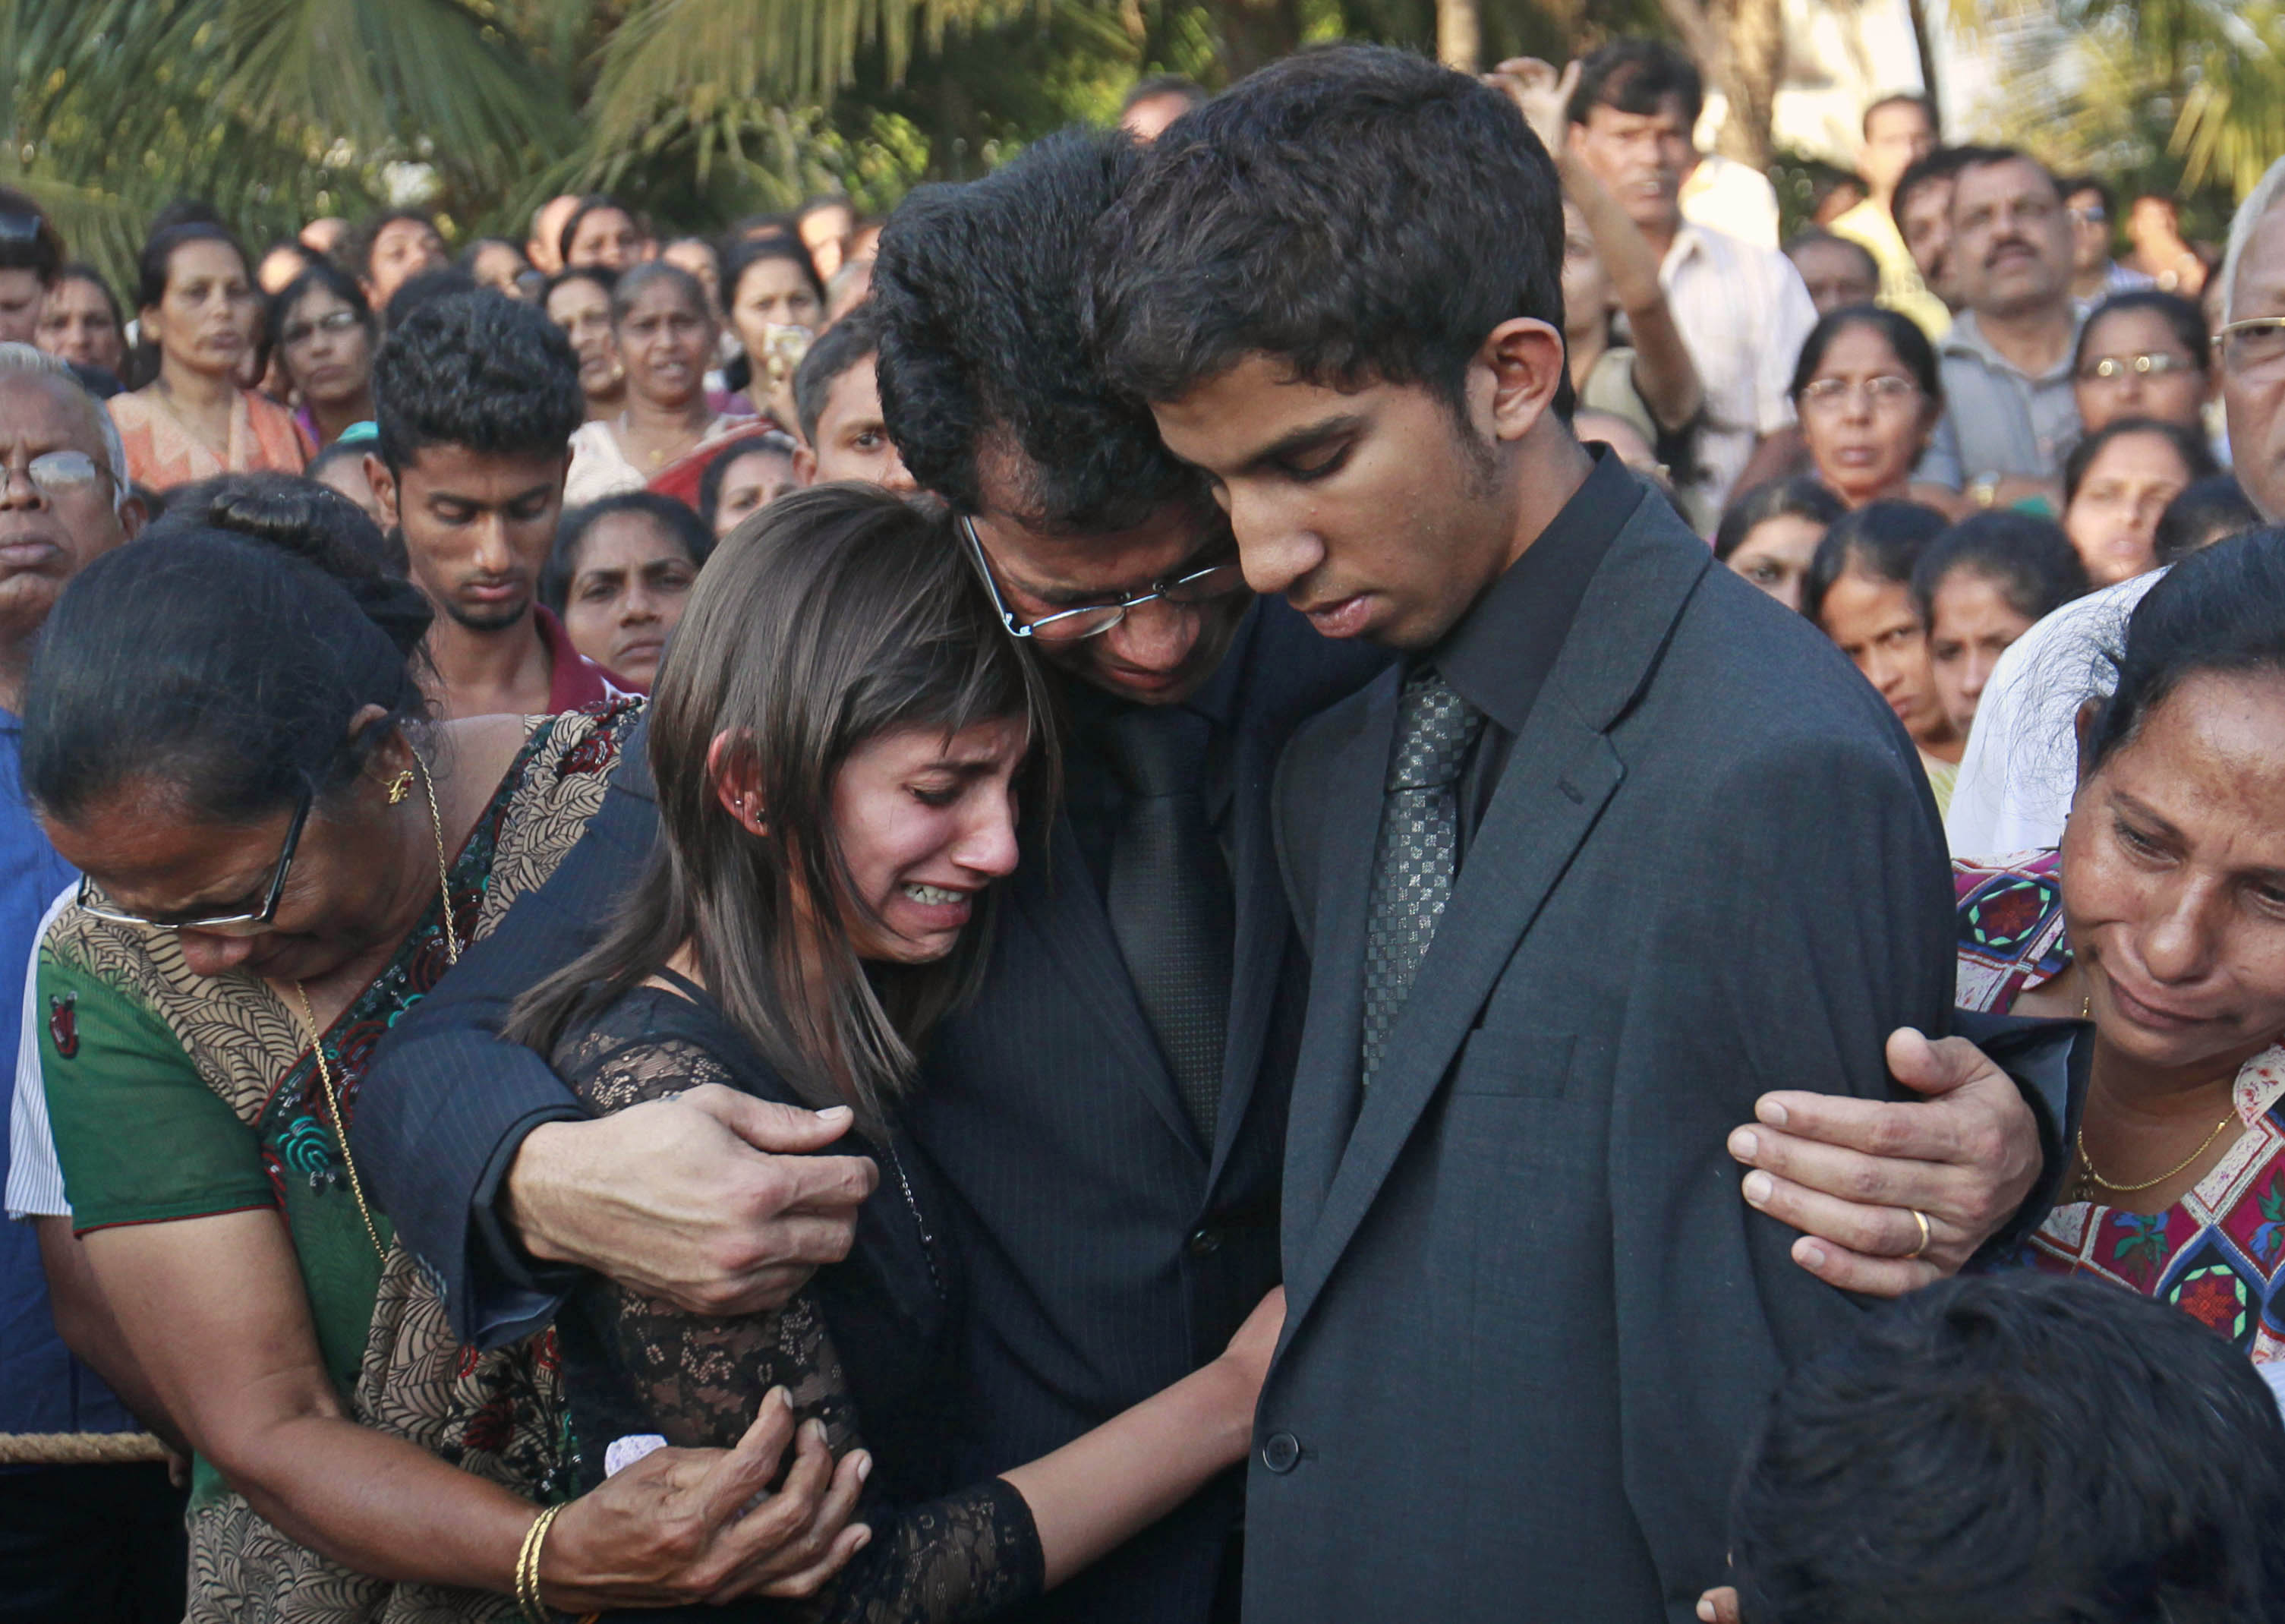 FILE - Jacintha Saldanha's widower Ben Barboza (C) and her children Lisha (2nd L) and Junal (2nd R) mourn during her funeral at a cemetery in Shirva, north of Mangalore Dec. 17, 2012.